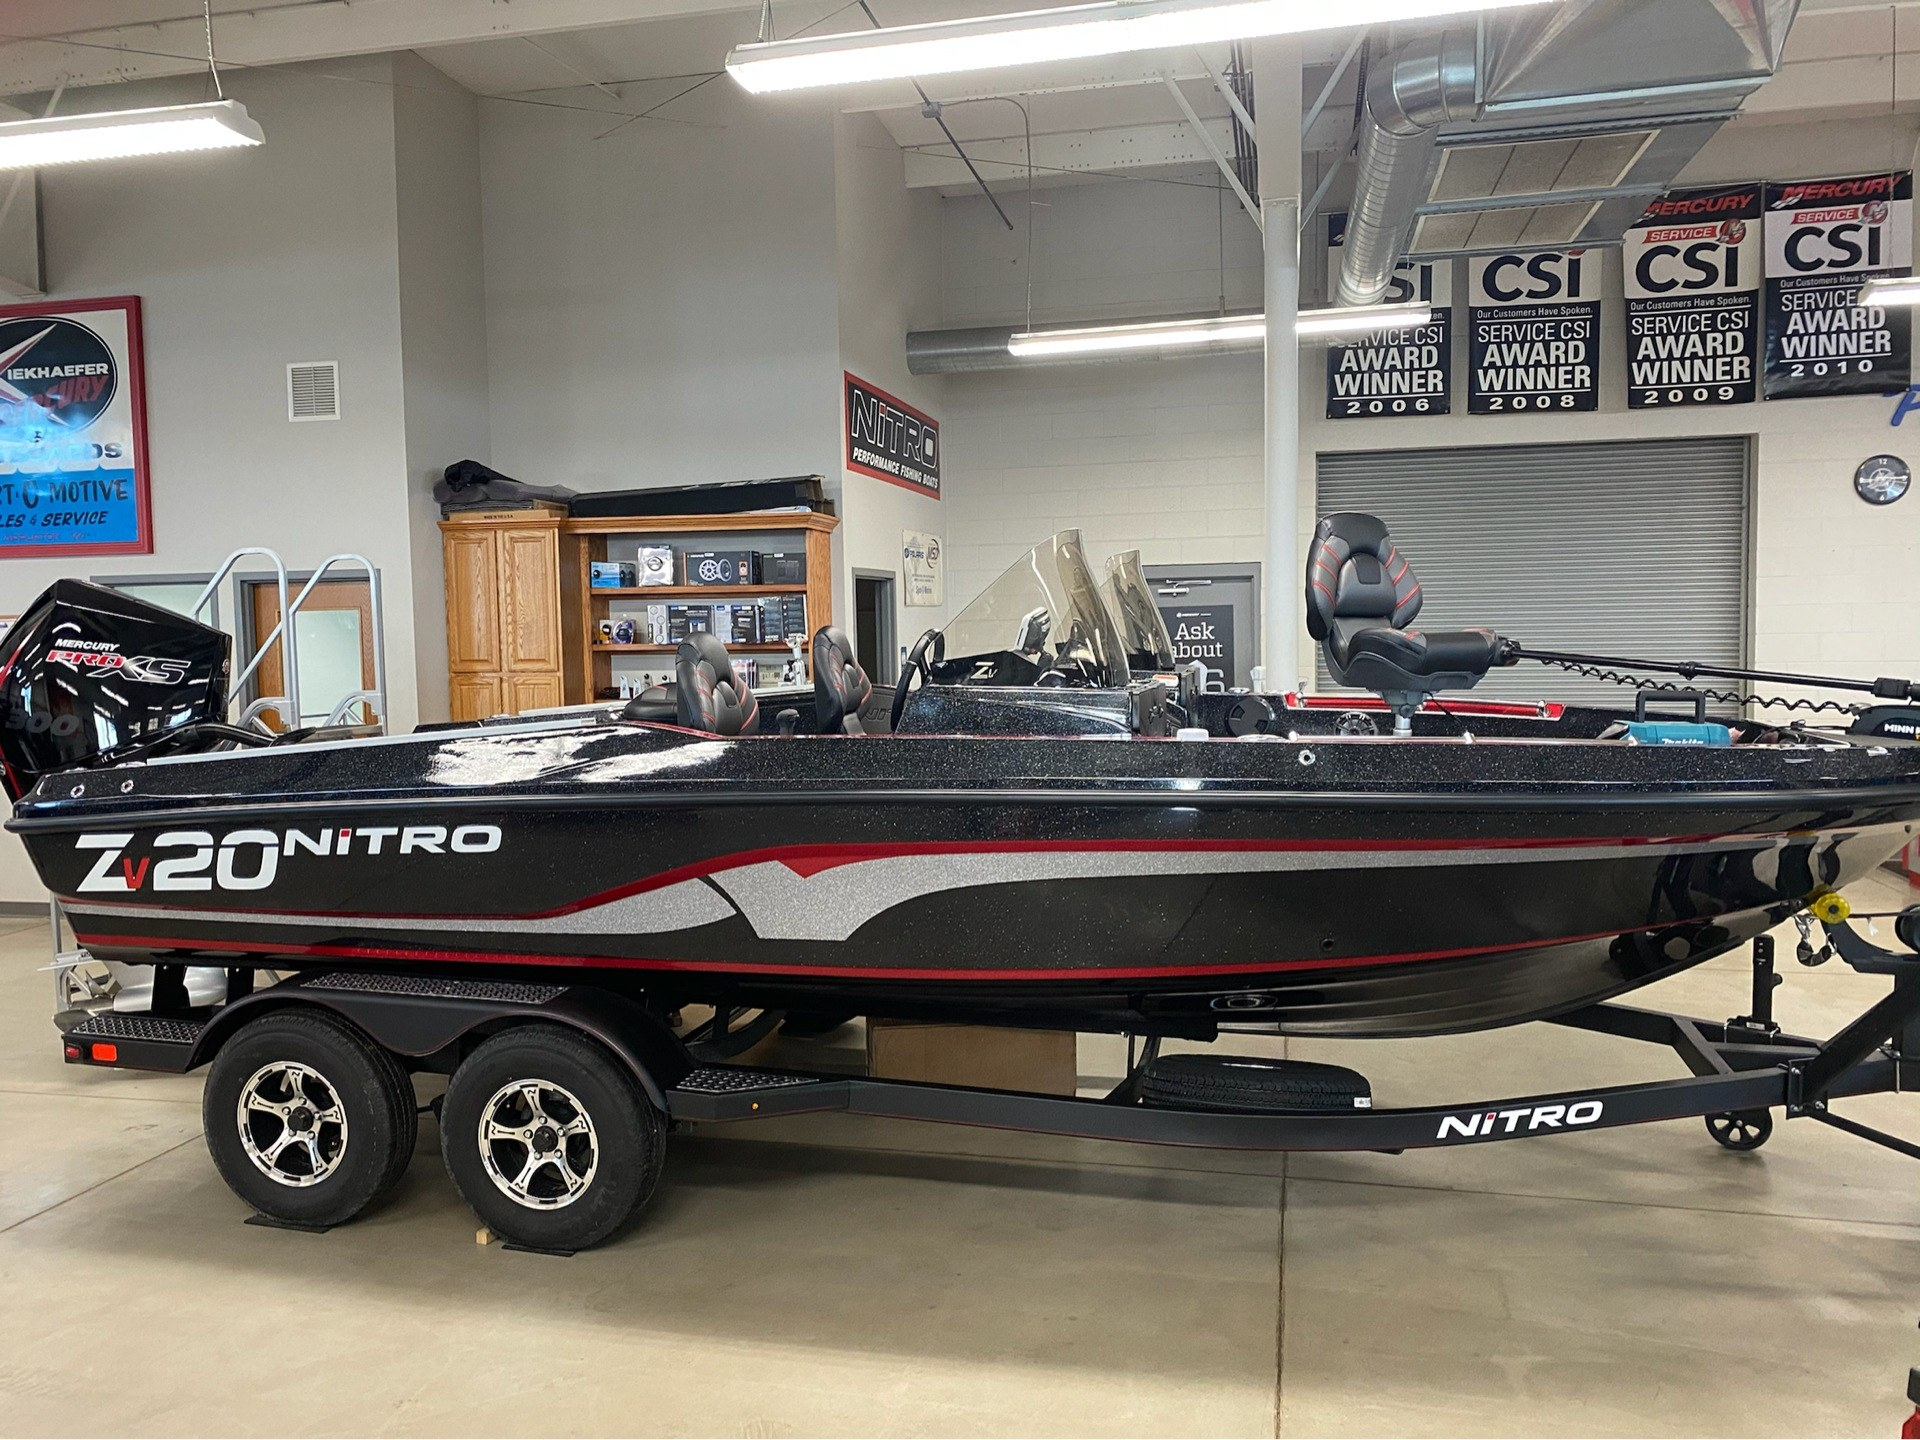 2020 Nitro ZV20 in Appleton, Wisconsin - Photo 2